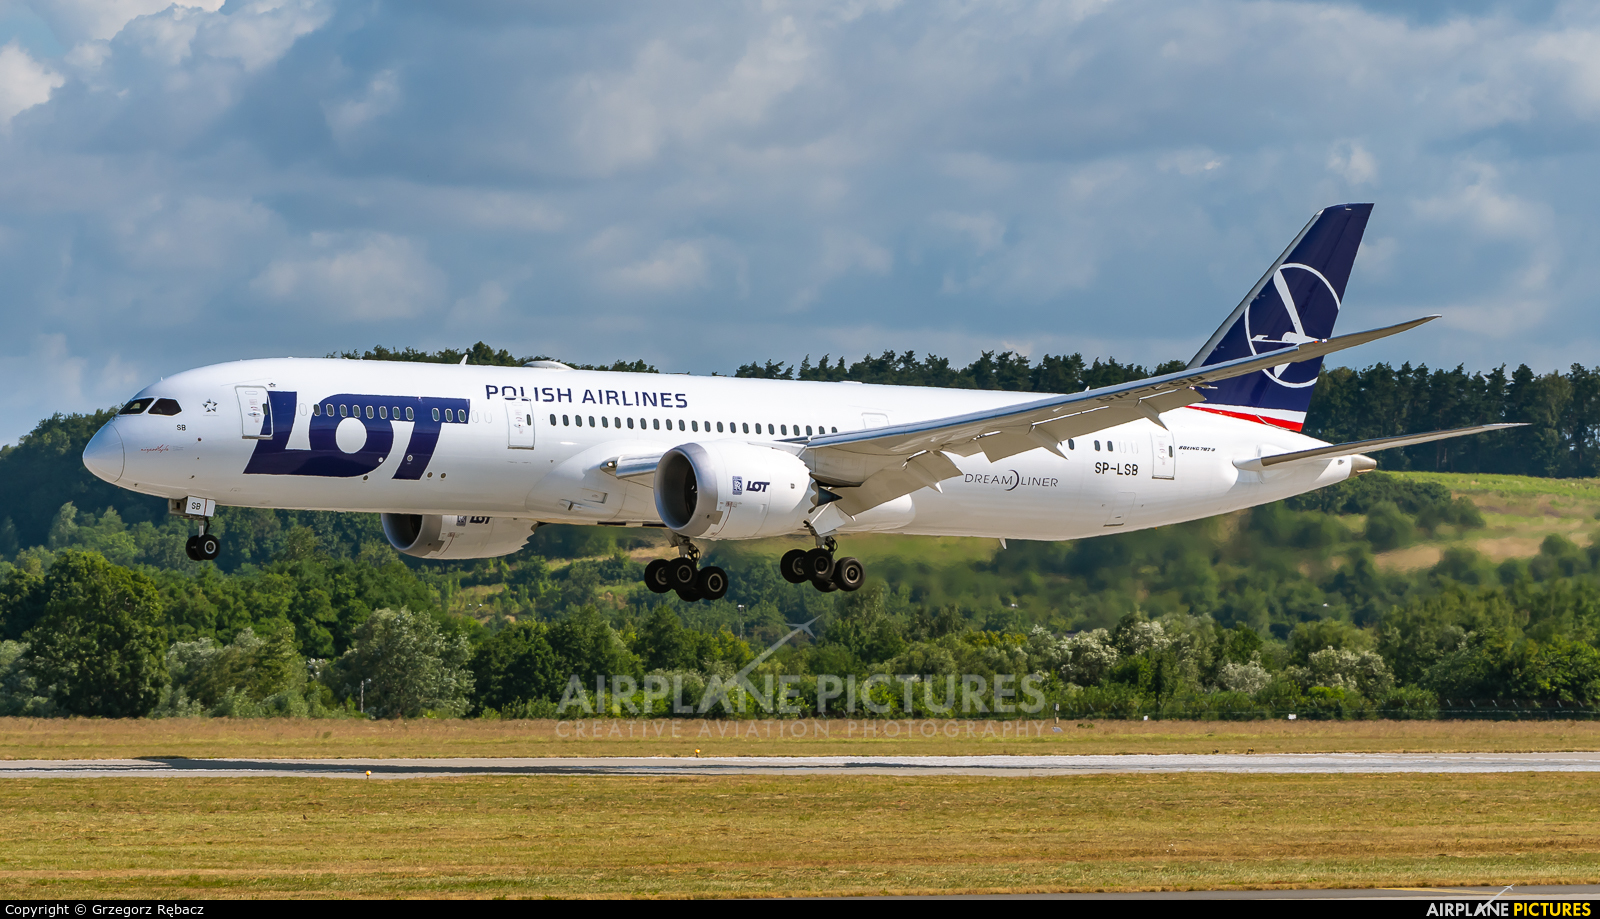 LOT - Polish Airlines SP-LSB aircraft at Kraków - John Paul II Intl